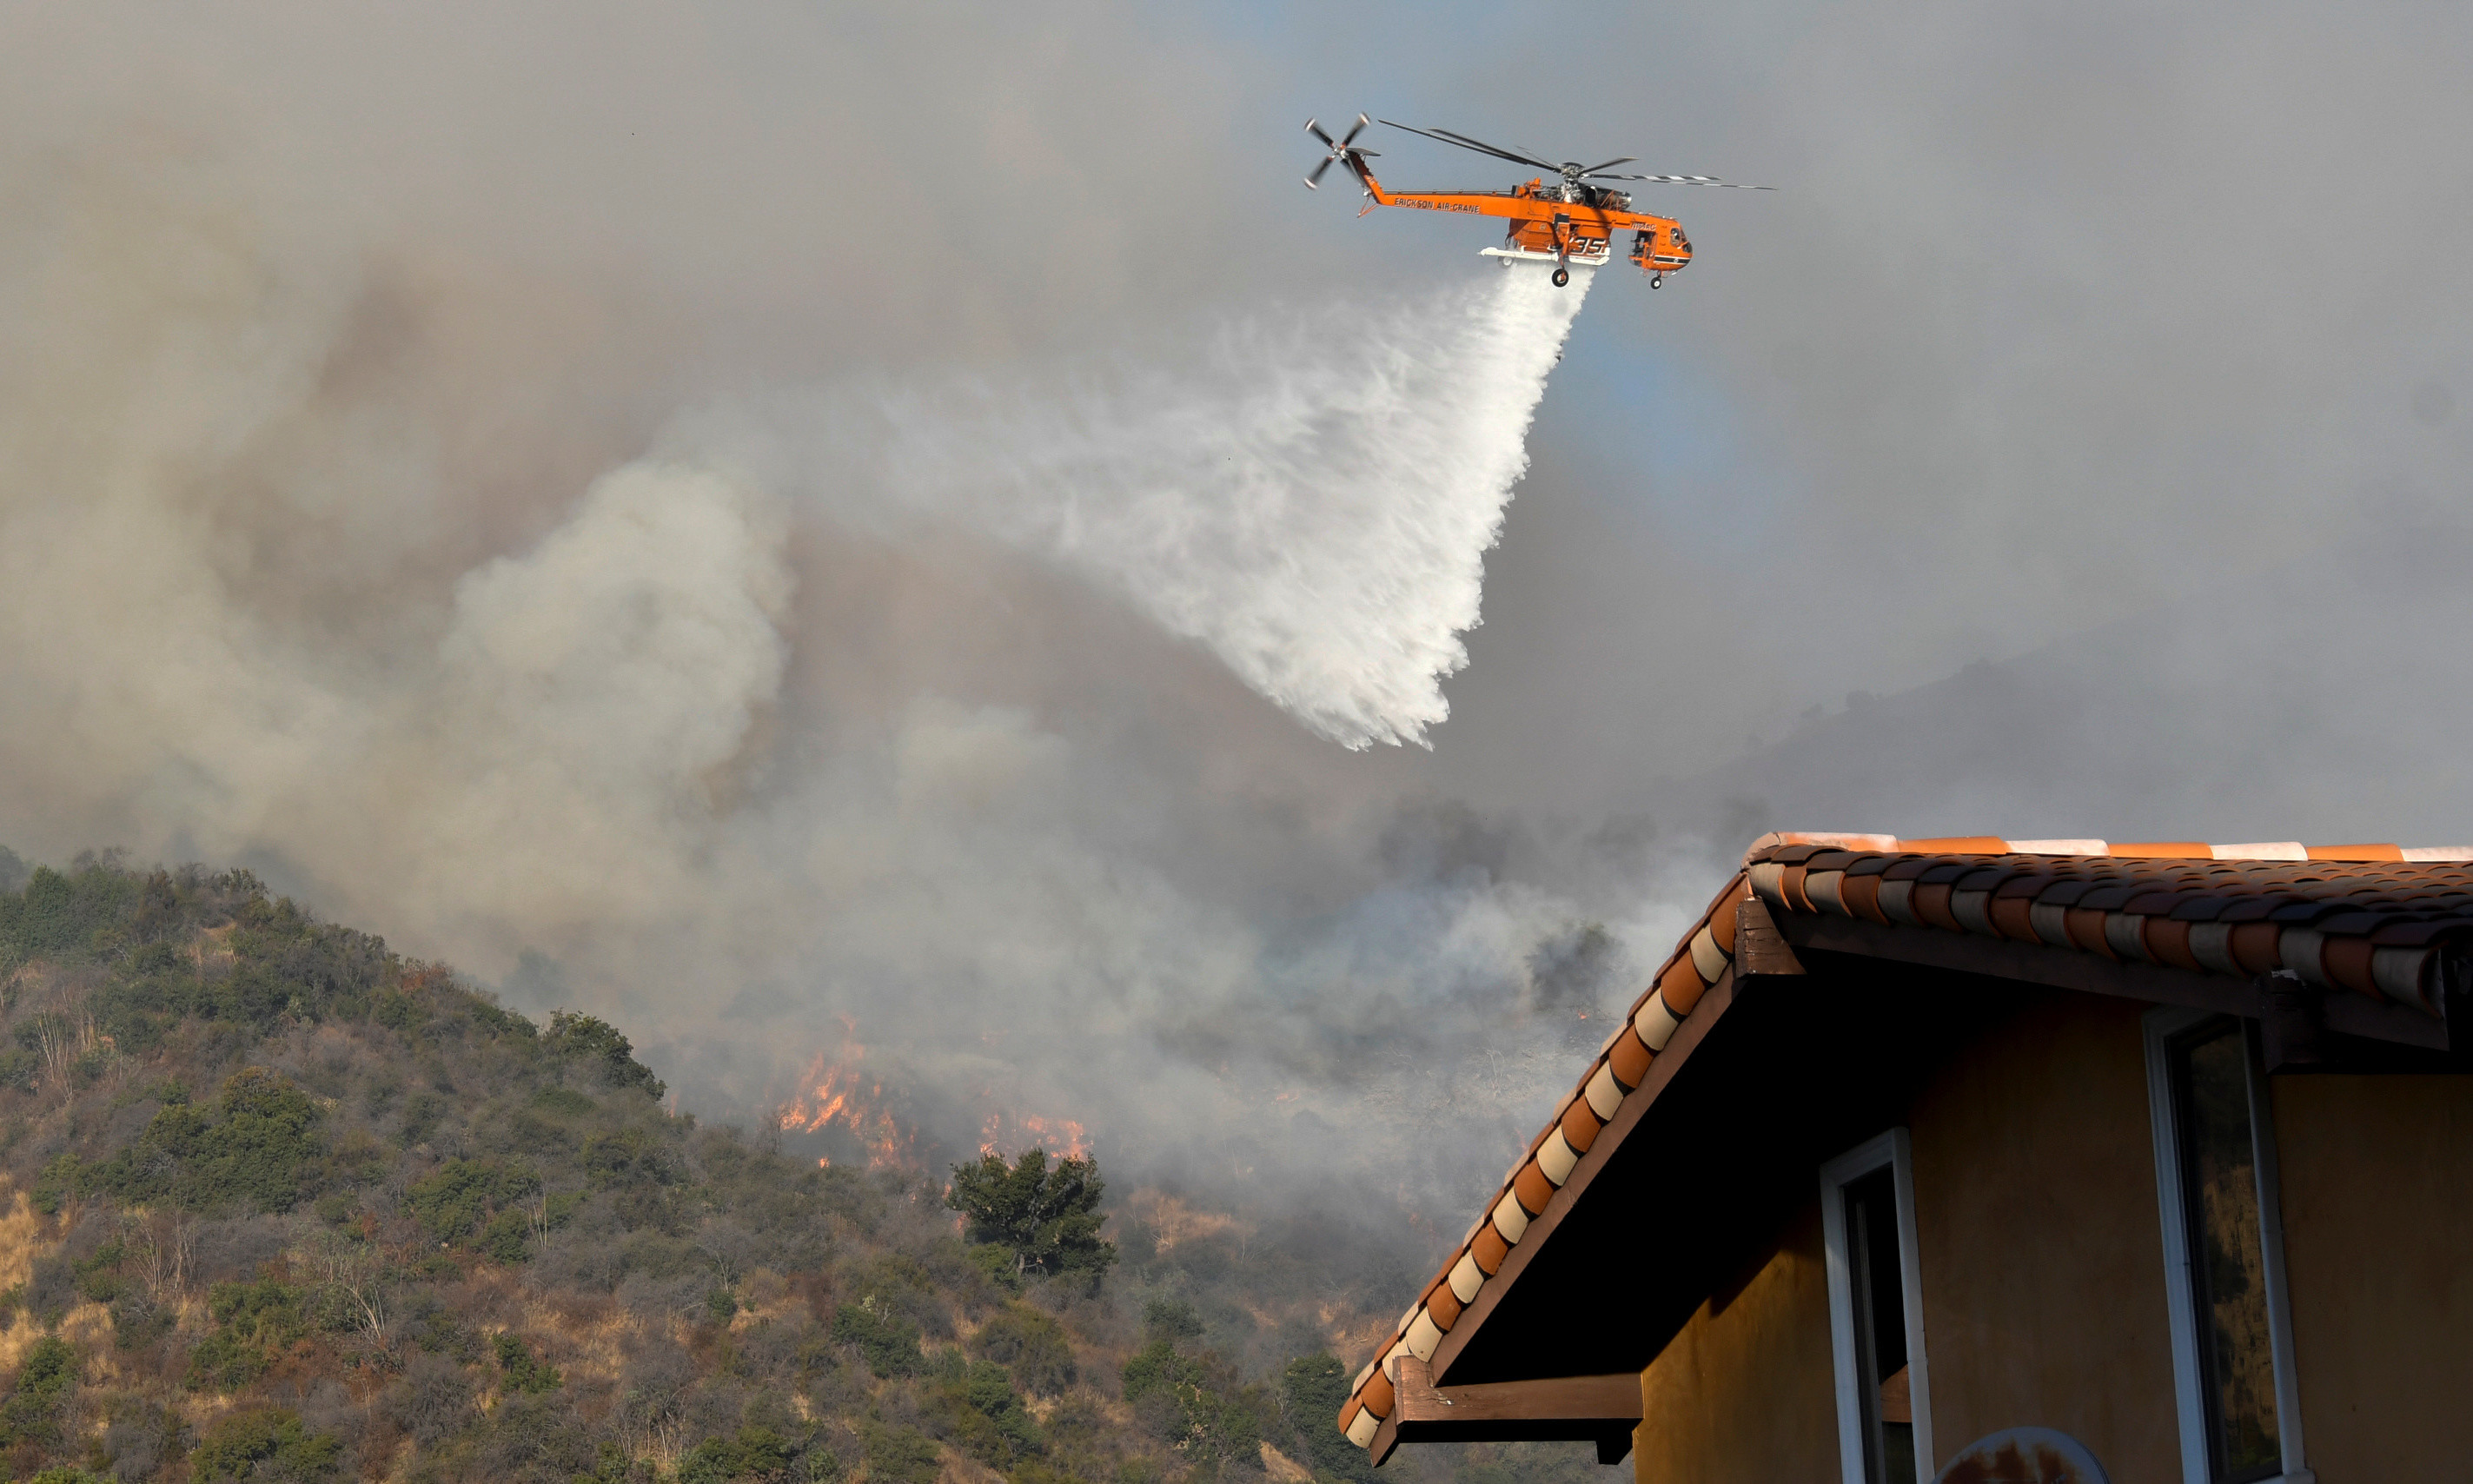 A firefighting helicopter makes a water drop on the Getty Fire as it burns in the hills of West Los Angeles, California.